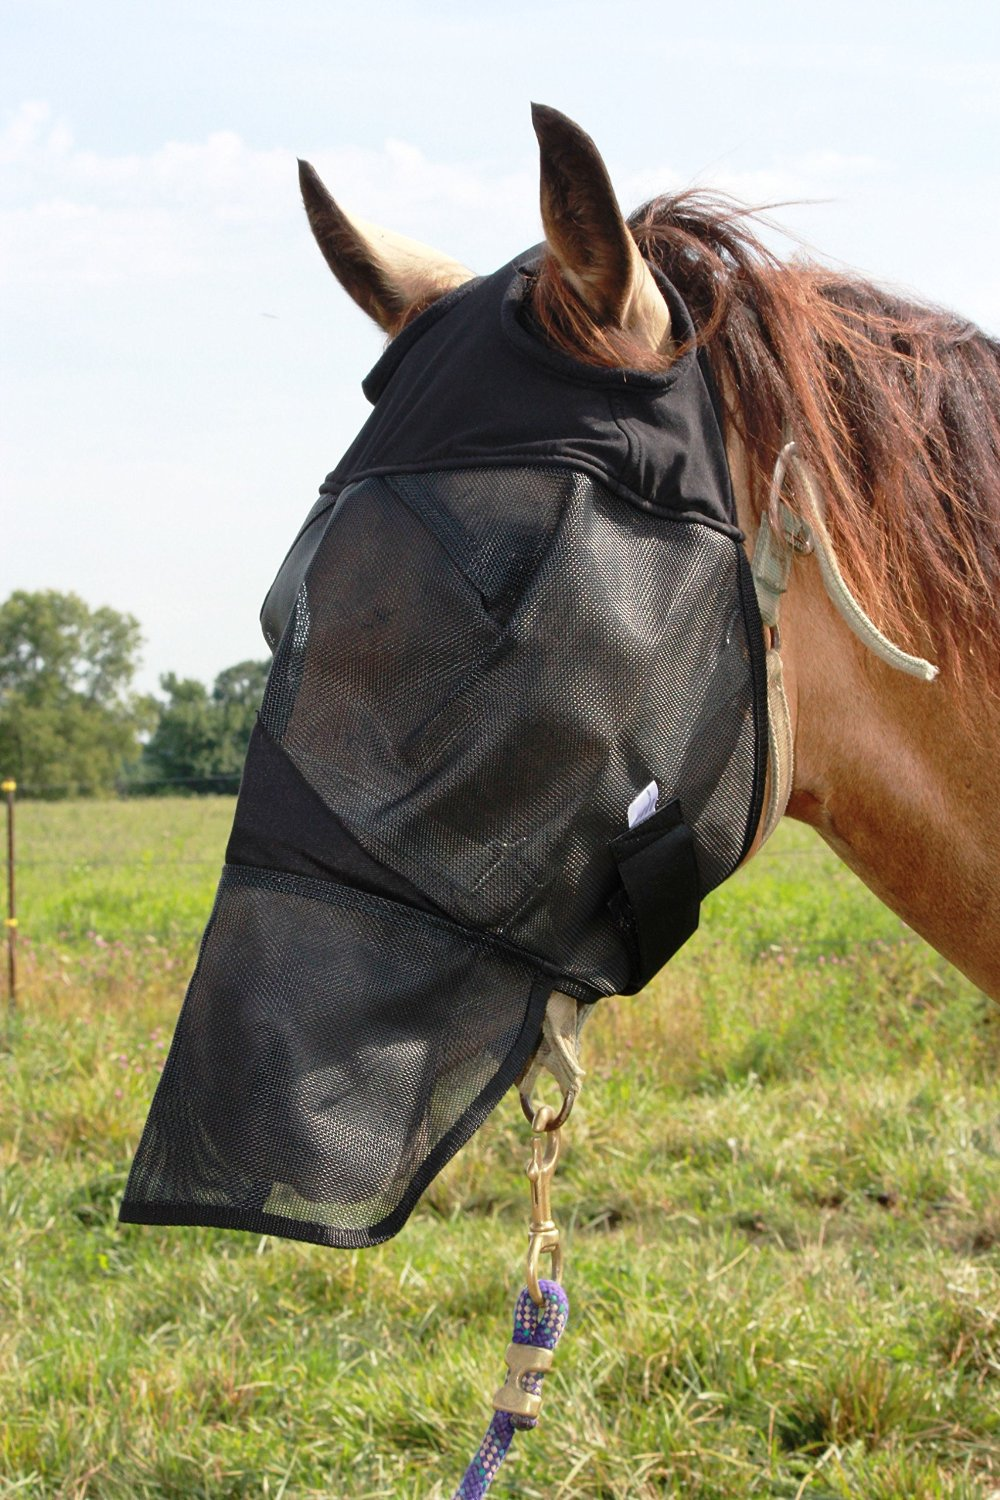 Horse Fly Mask with Long Nose, All Around Barn, Stable, Pasture, Trail Riding Fly and Sun Protection Standard Fly Mask - Style: With Long Nose - All Sizes